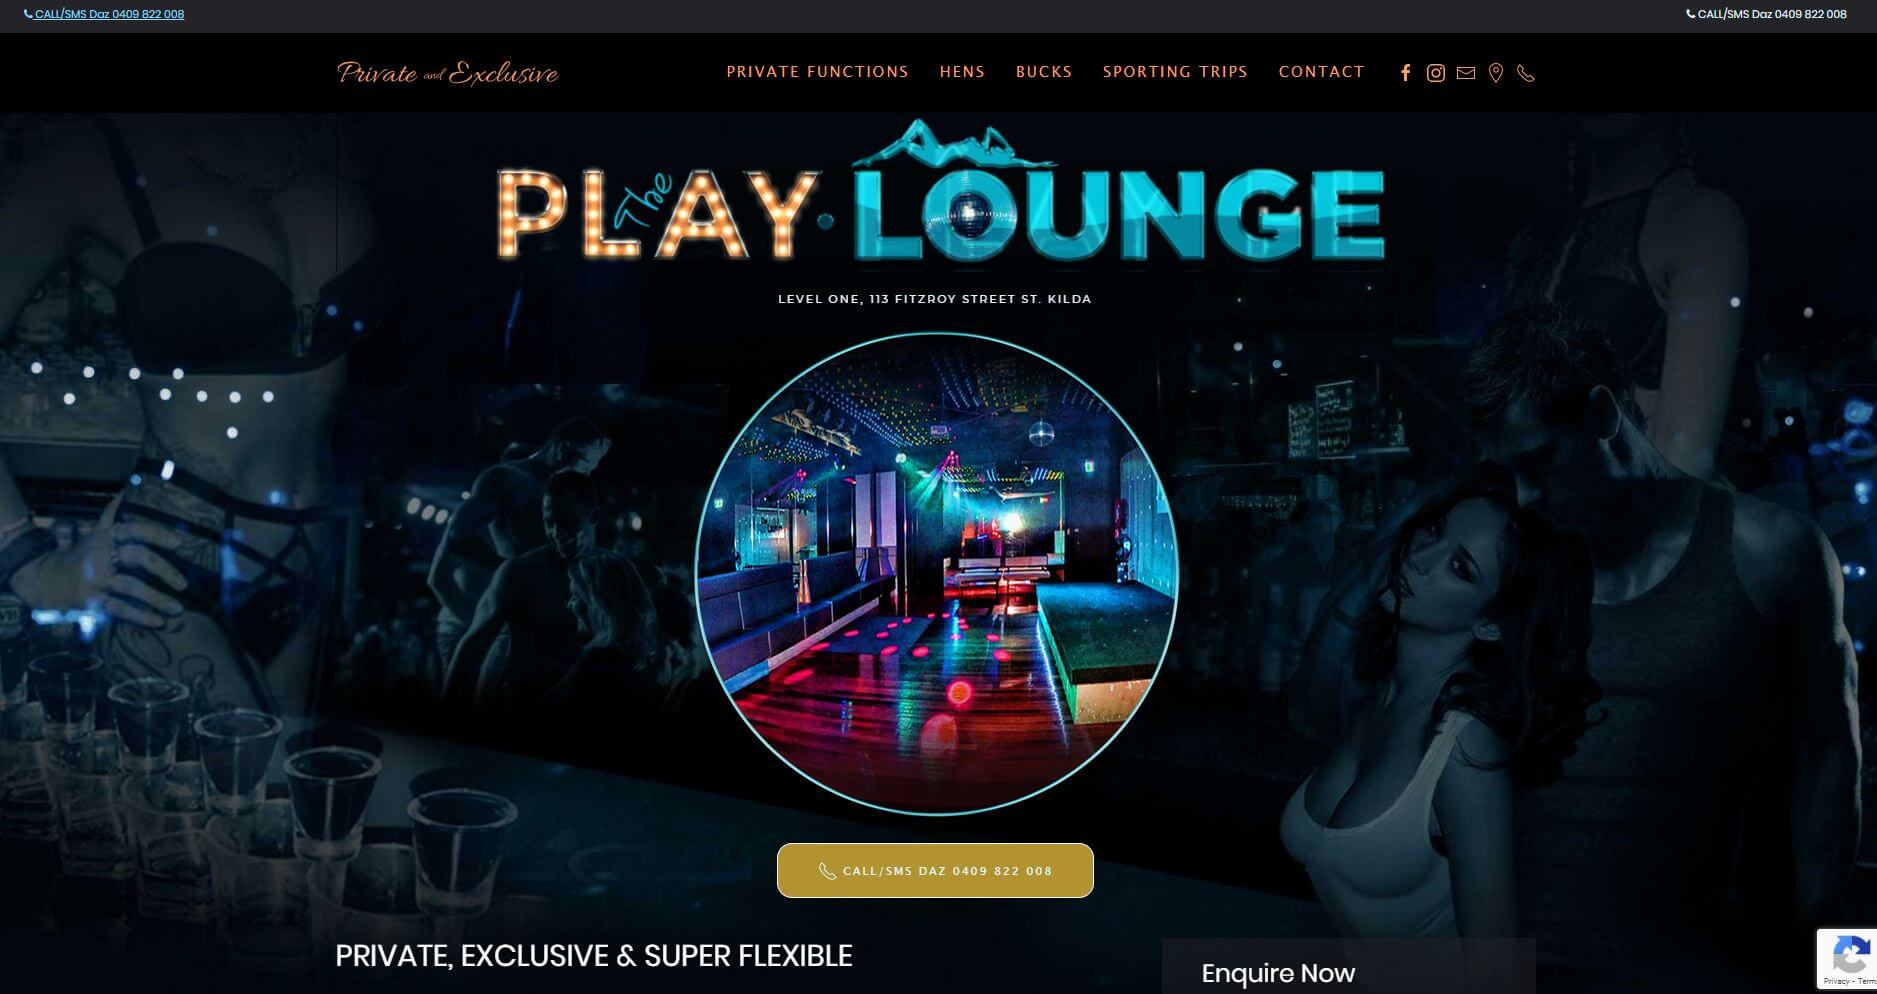 The Play Lounge